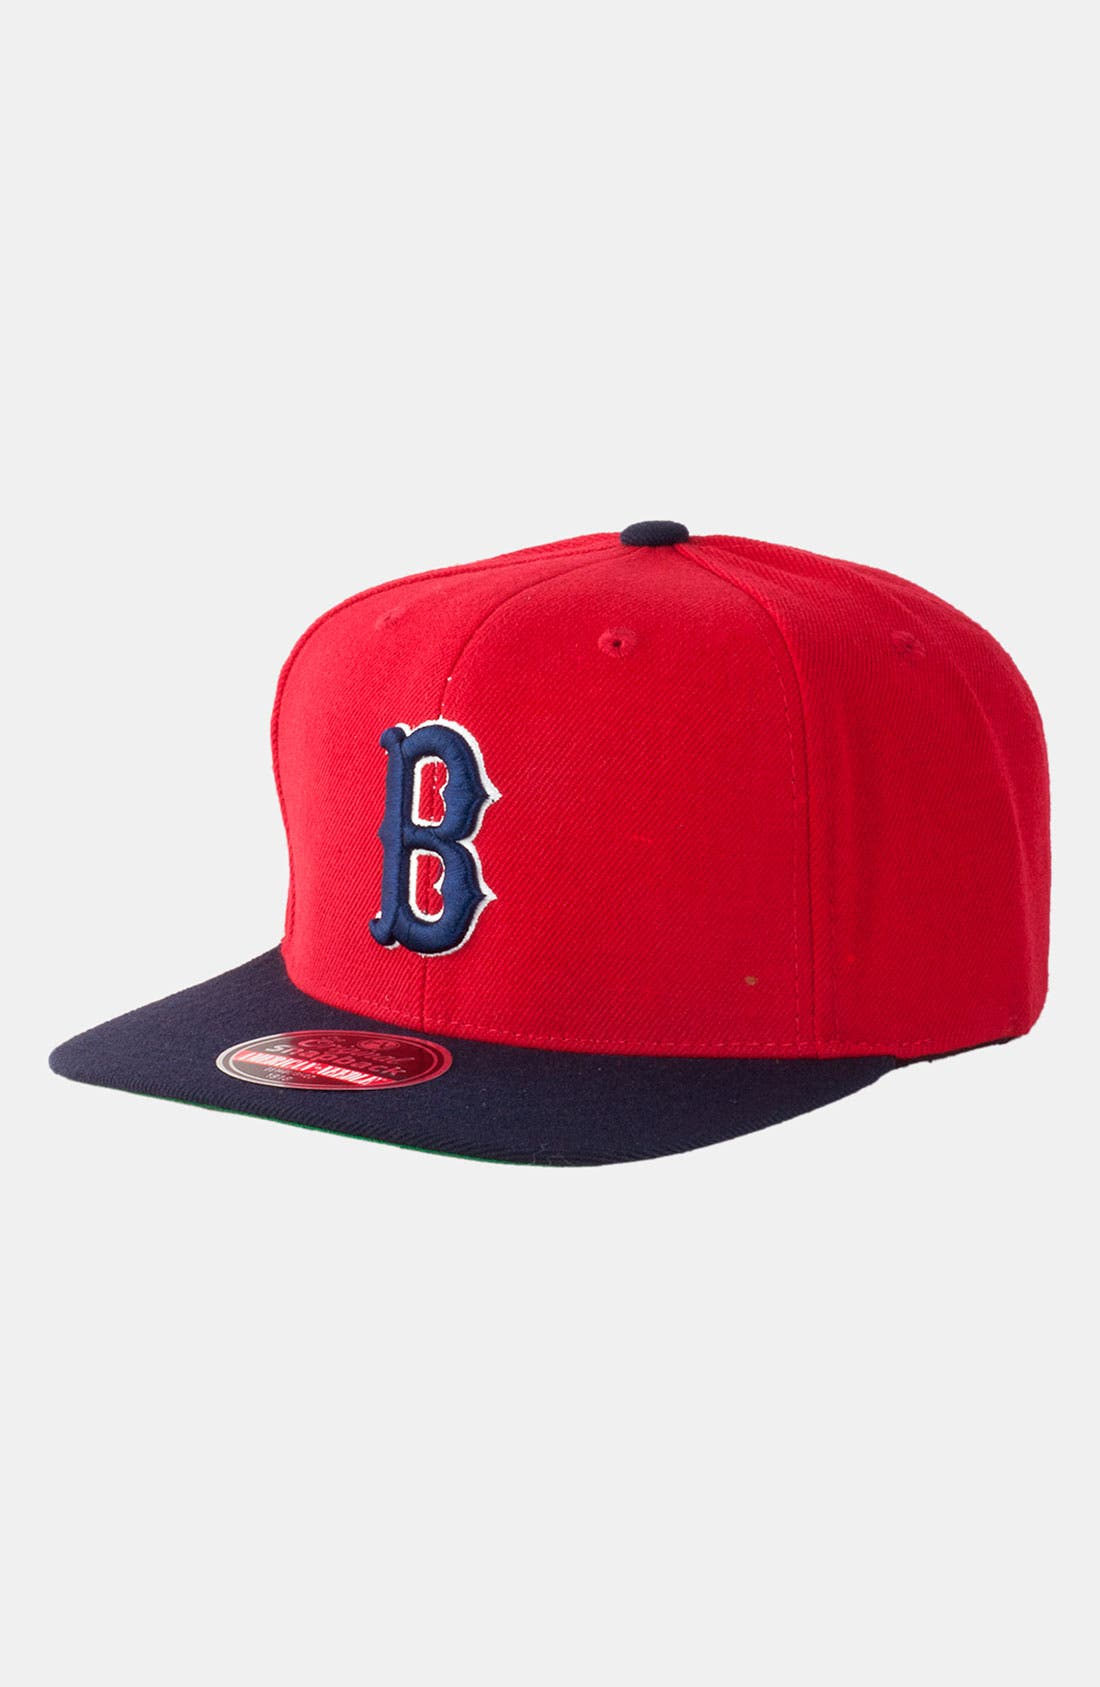 Main Image - American Needle 'Boston Red Sox - Cooperstown' Snapback Baseball Cap